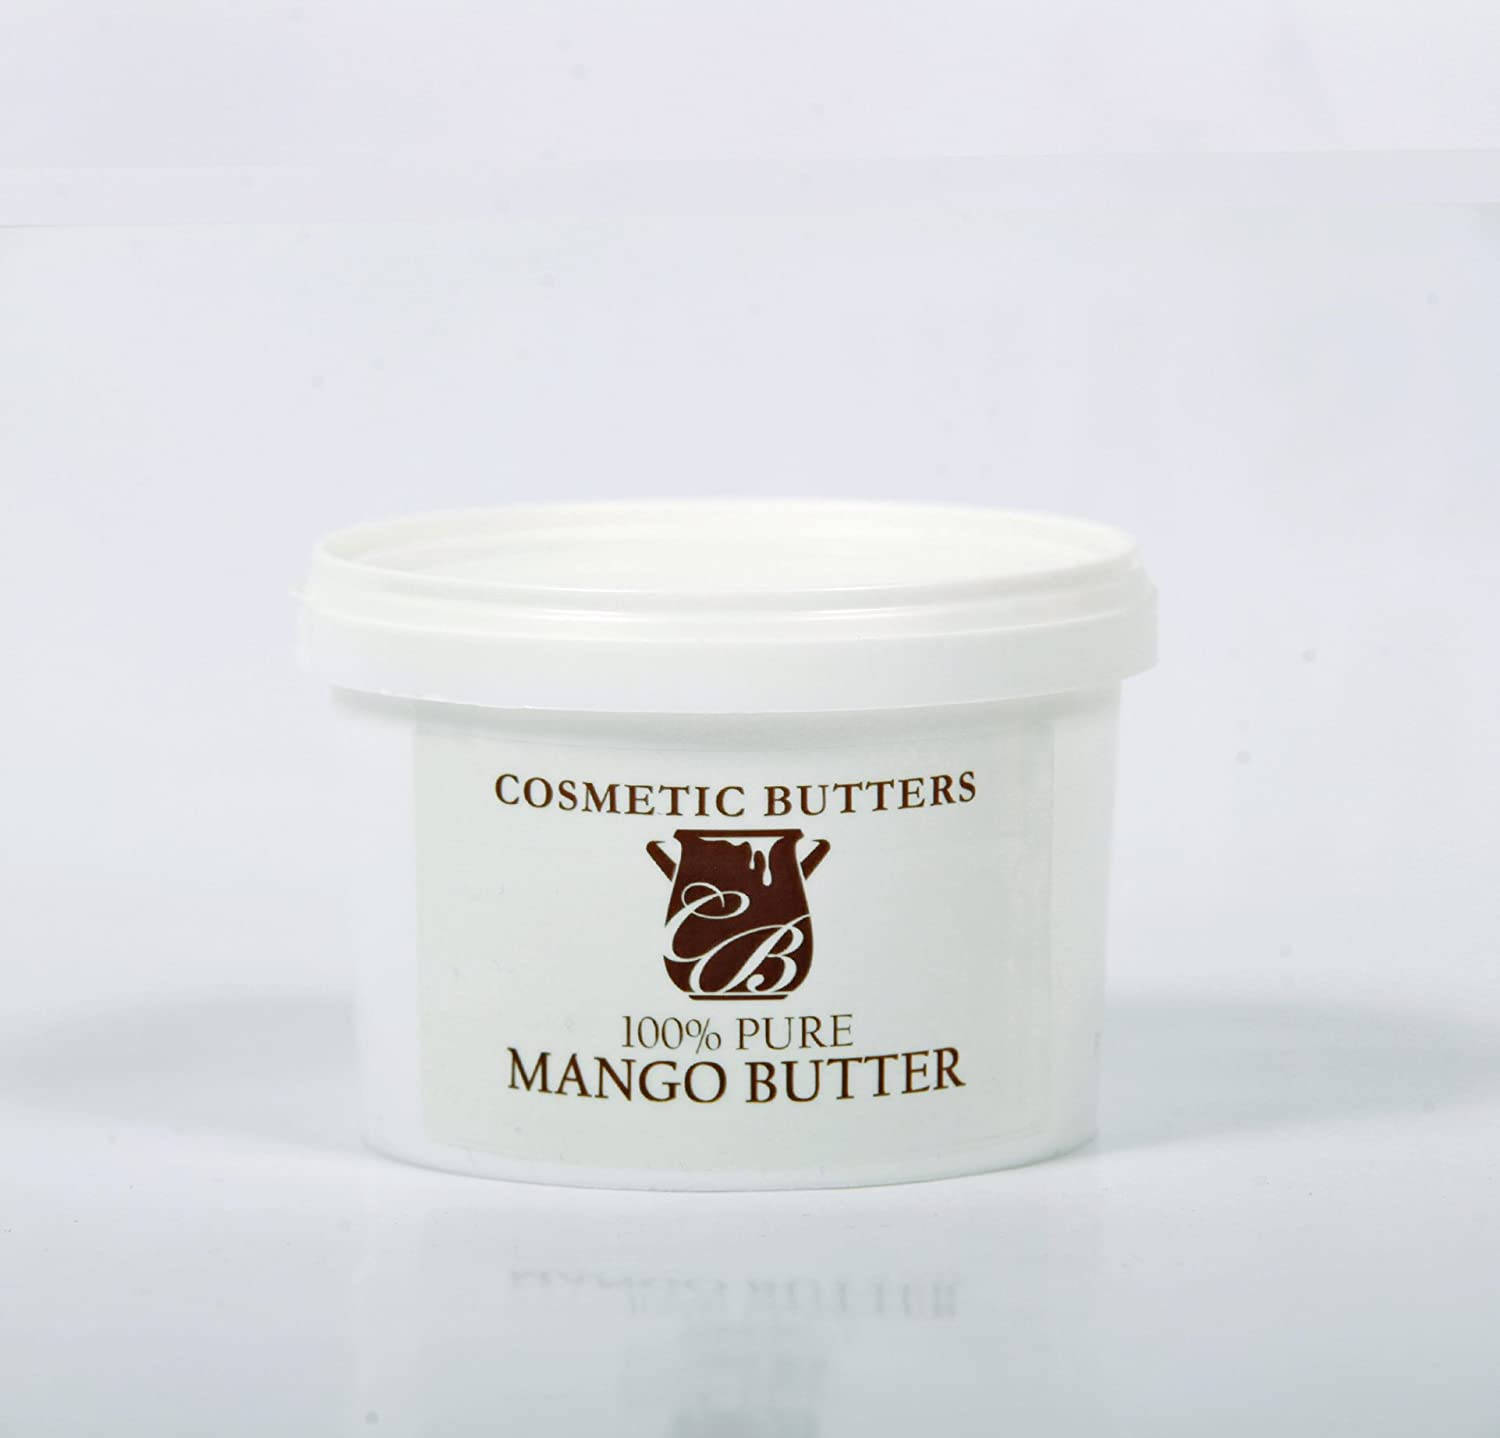 Mango Butter - 100% Pure and Natural - 500g HealthCenter BUTTMANG500